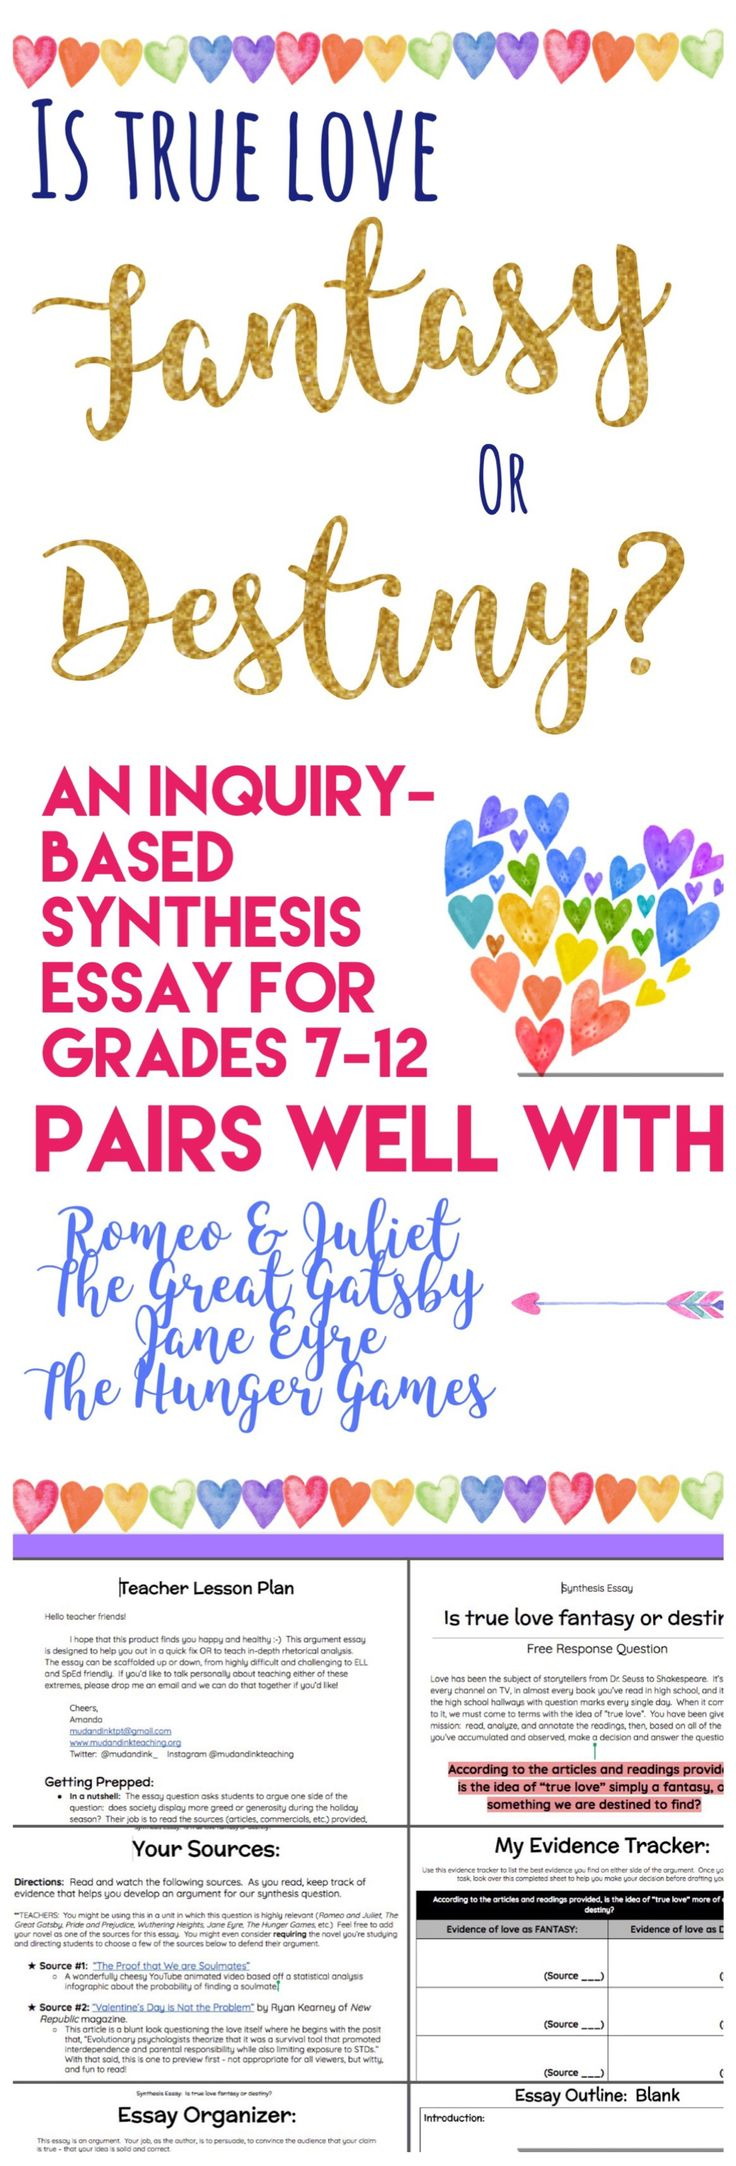 Every English teacher needs new ways to teach argument, rhetoric, and analytical writing. The Inquiry-Based Synthesis Essay is here to save the day! #argumentwriting #writing